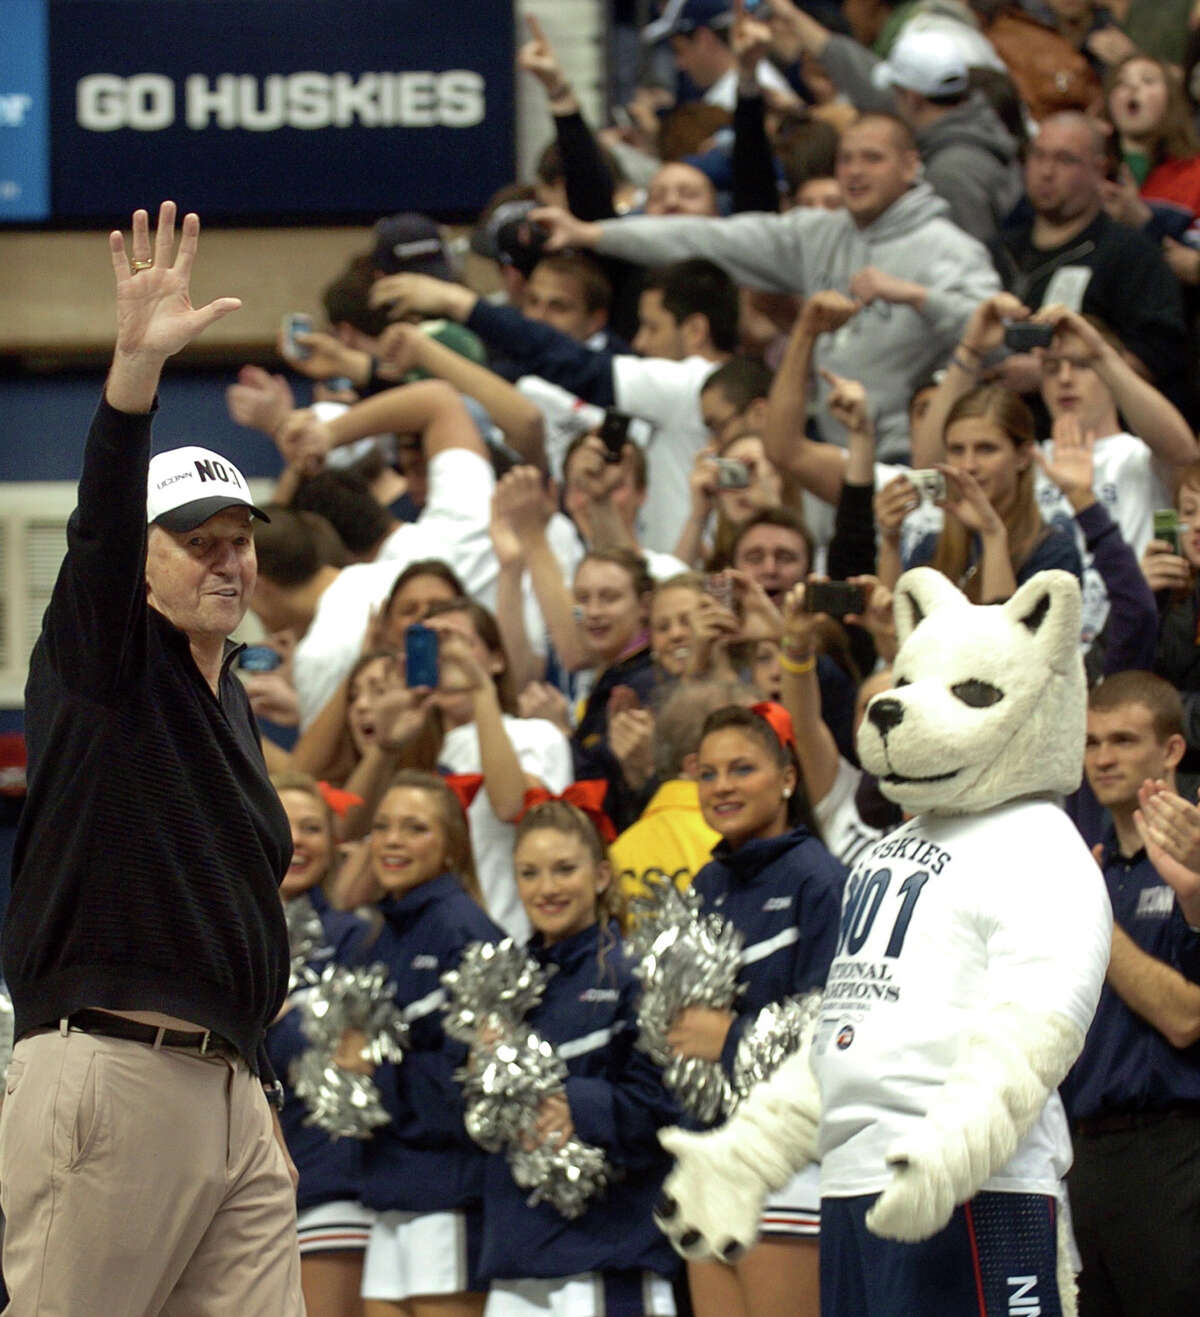 UCONN Men's Basketball Head Coach Jim Calhoun waves to fans during a rally held for the men's basketball team at Gampel Pavilion in Storrs, Conn. on Tuesday April 5, 2011.